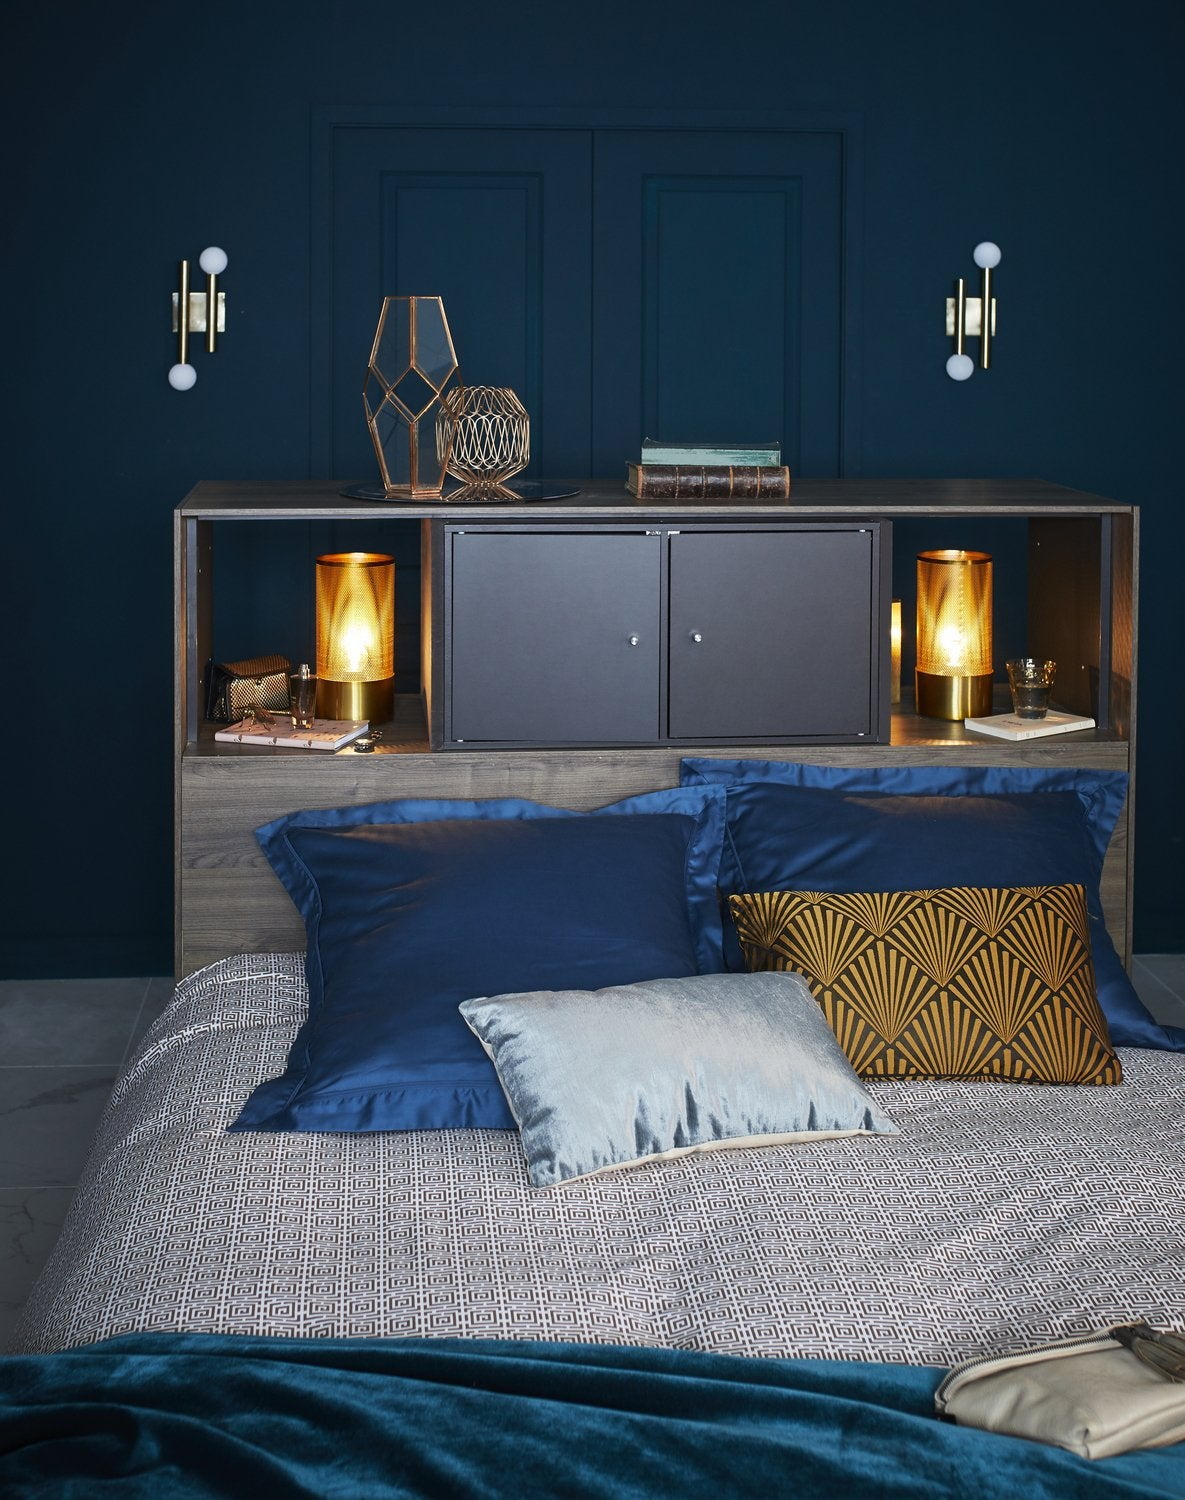 bleu canard bleu paon ou bleu turquoise leroy merlin. Black Bedroom Furniture Sets. Home Design Ideas